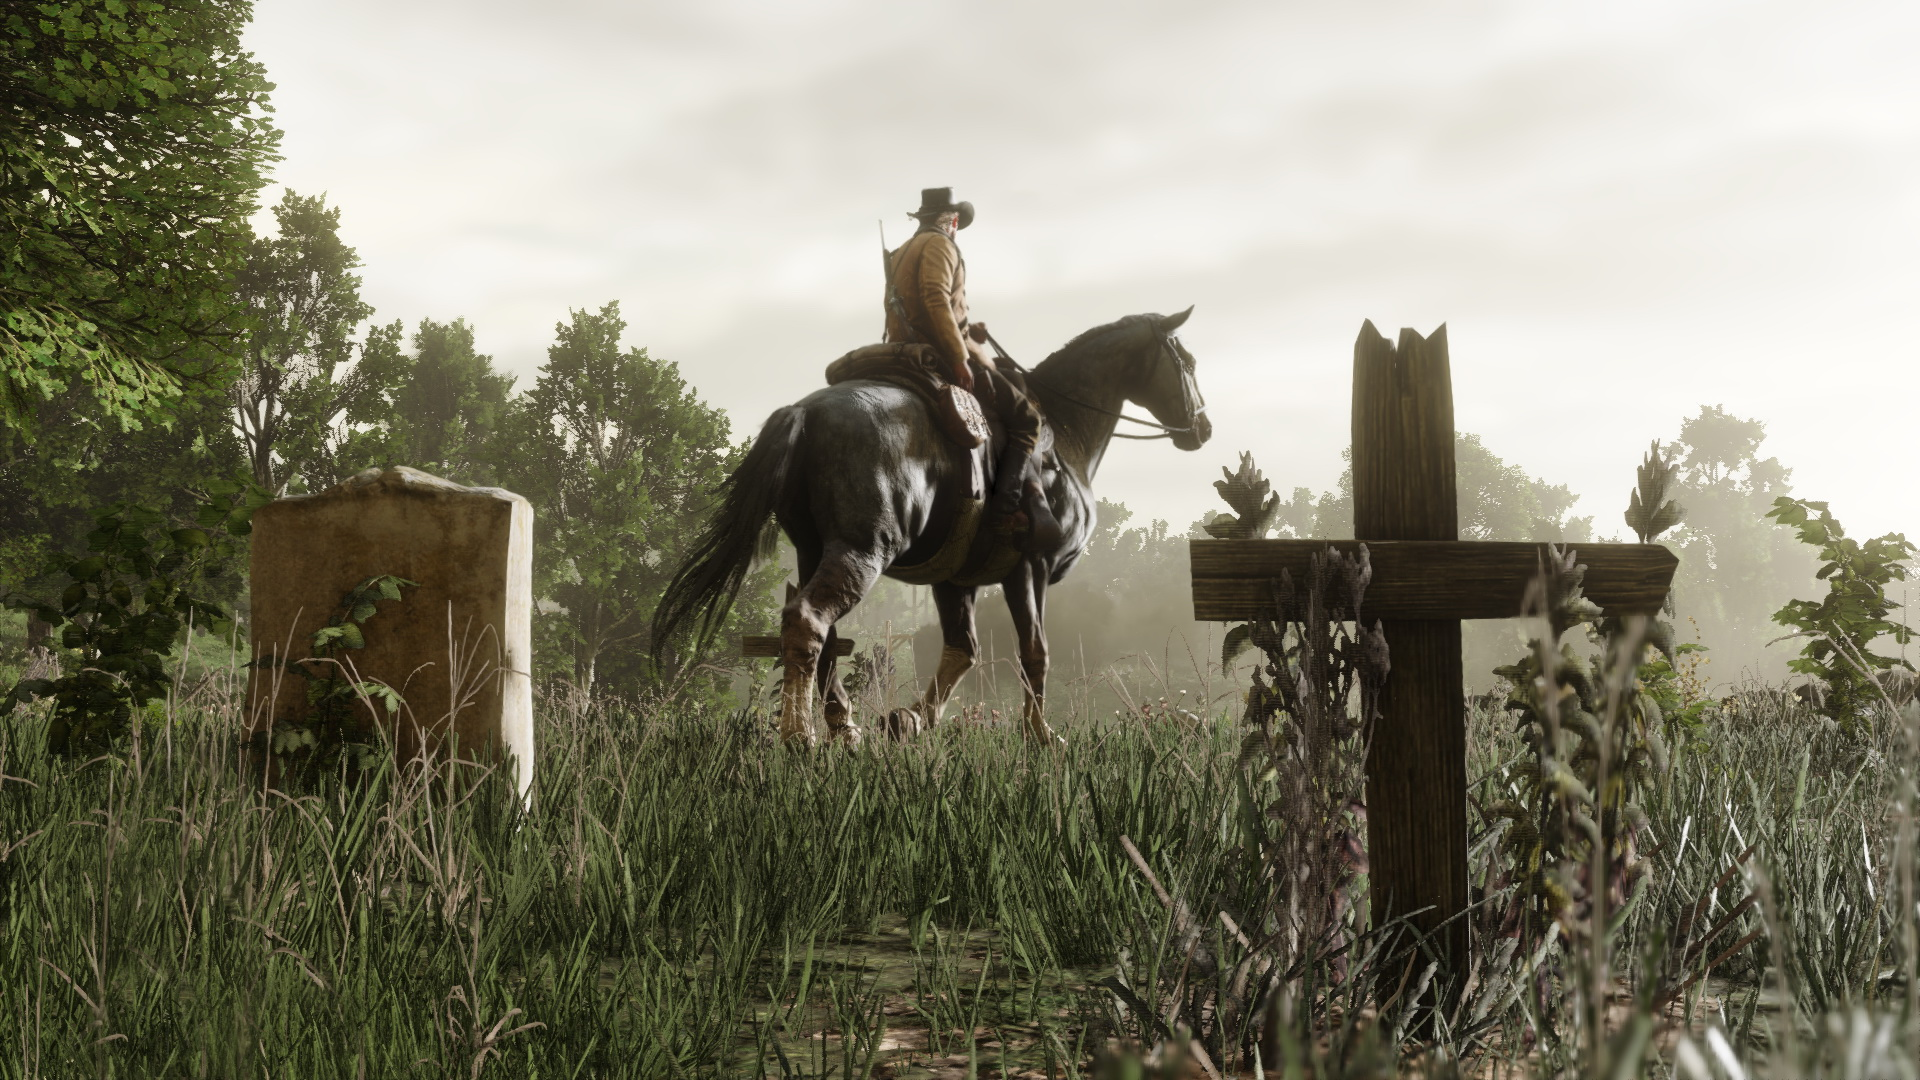 Red Dead Redemption 2 PC inceleme Red Dead Redemption 2 rehber Red Dead Redemption 2 sistem gereksinimleri rdr 2 sistem gereksinimleri